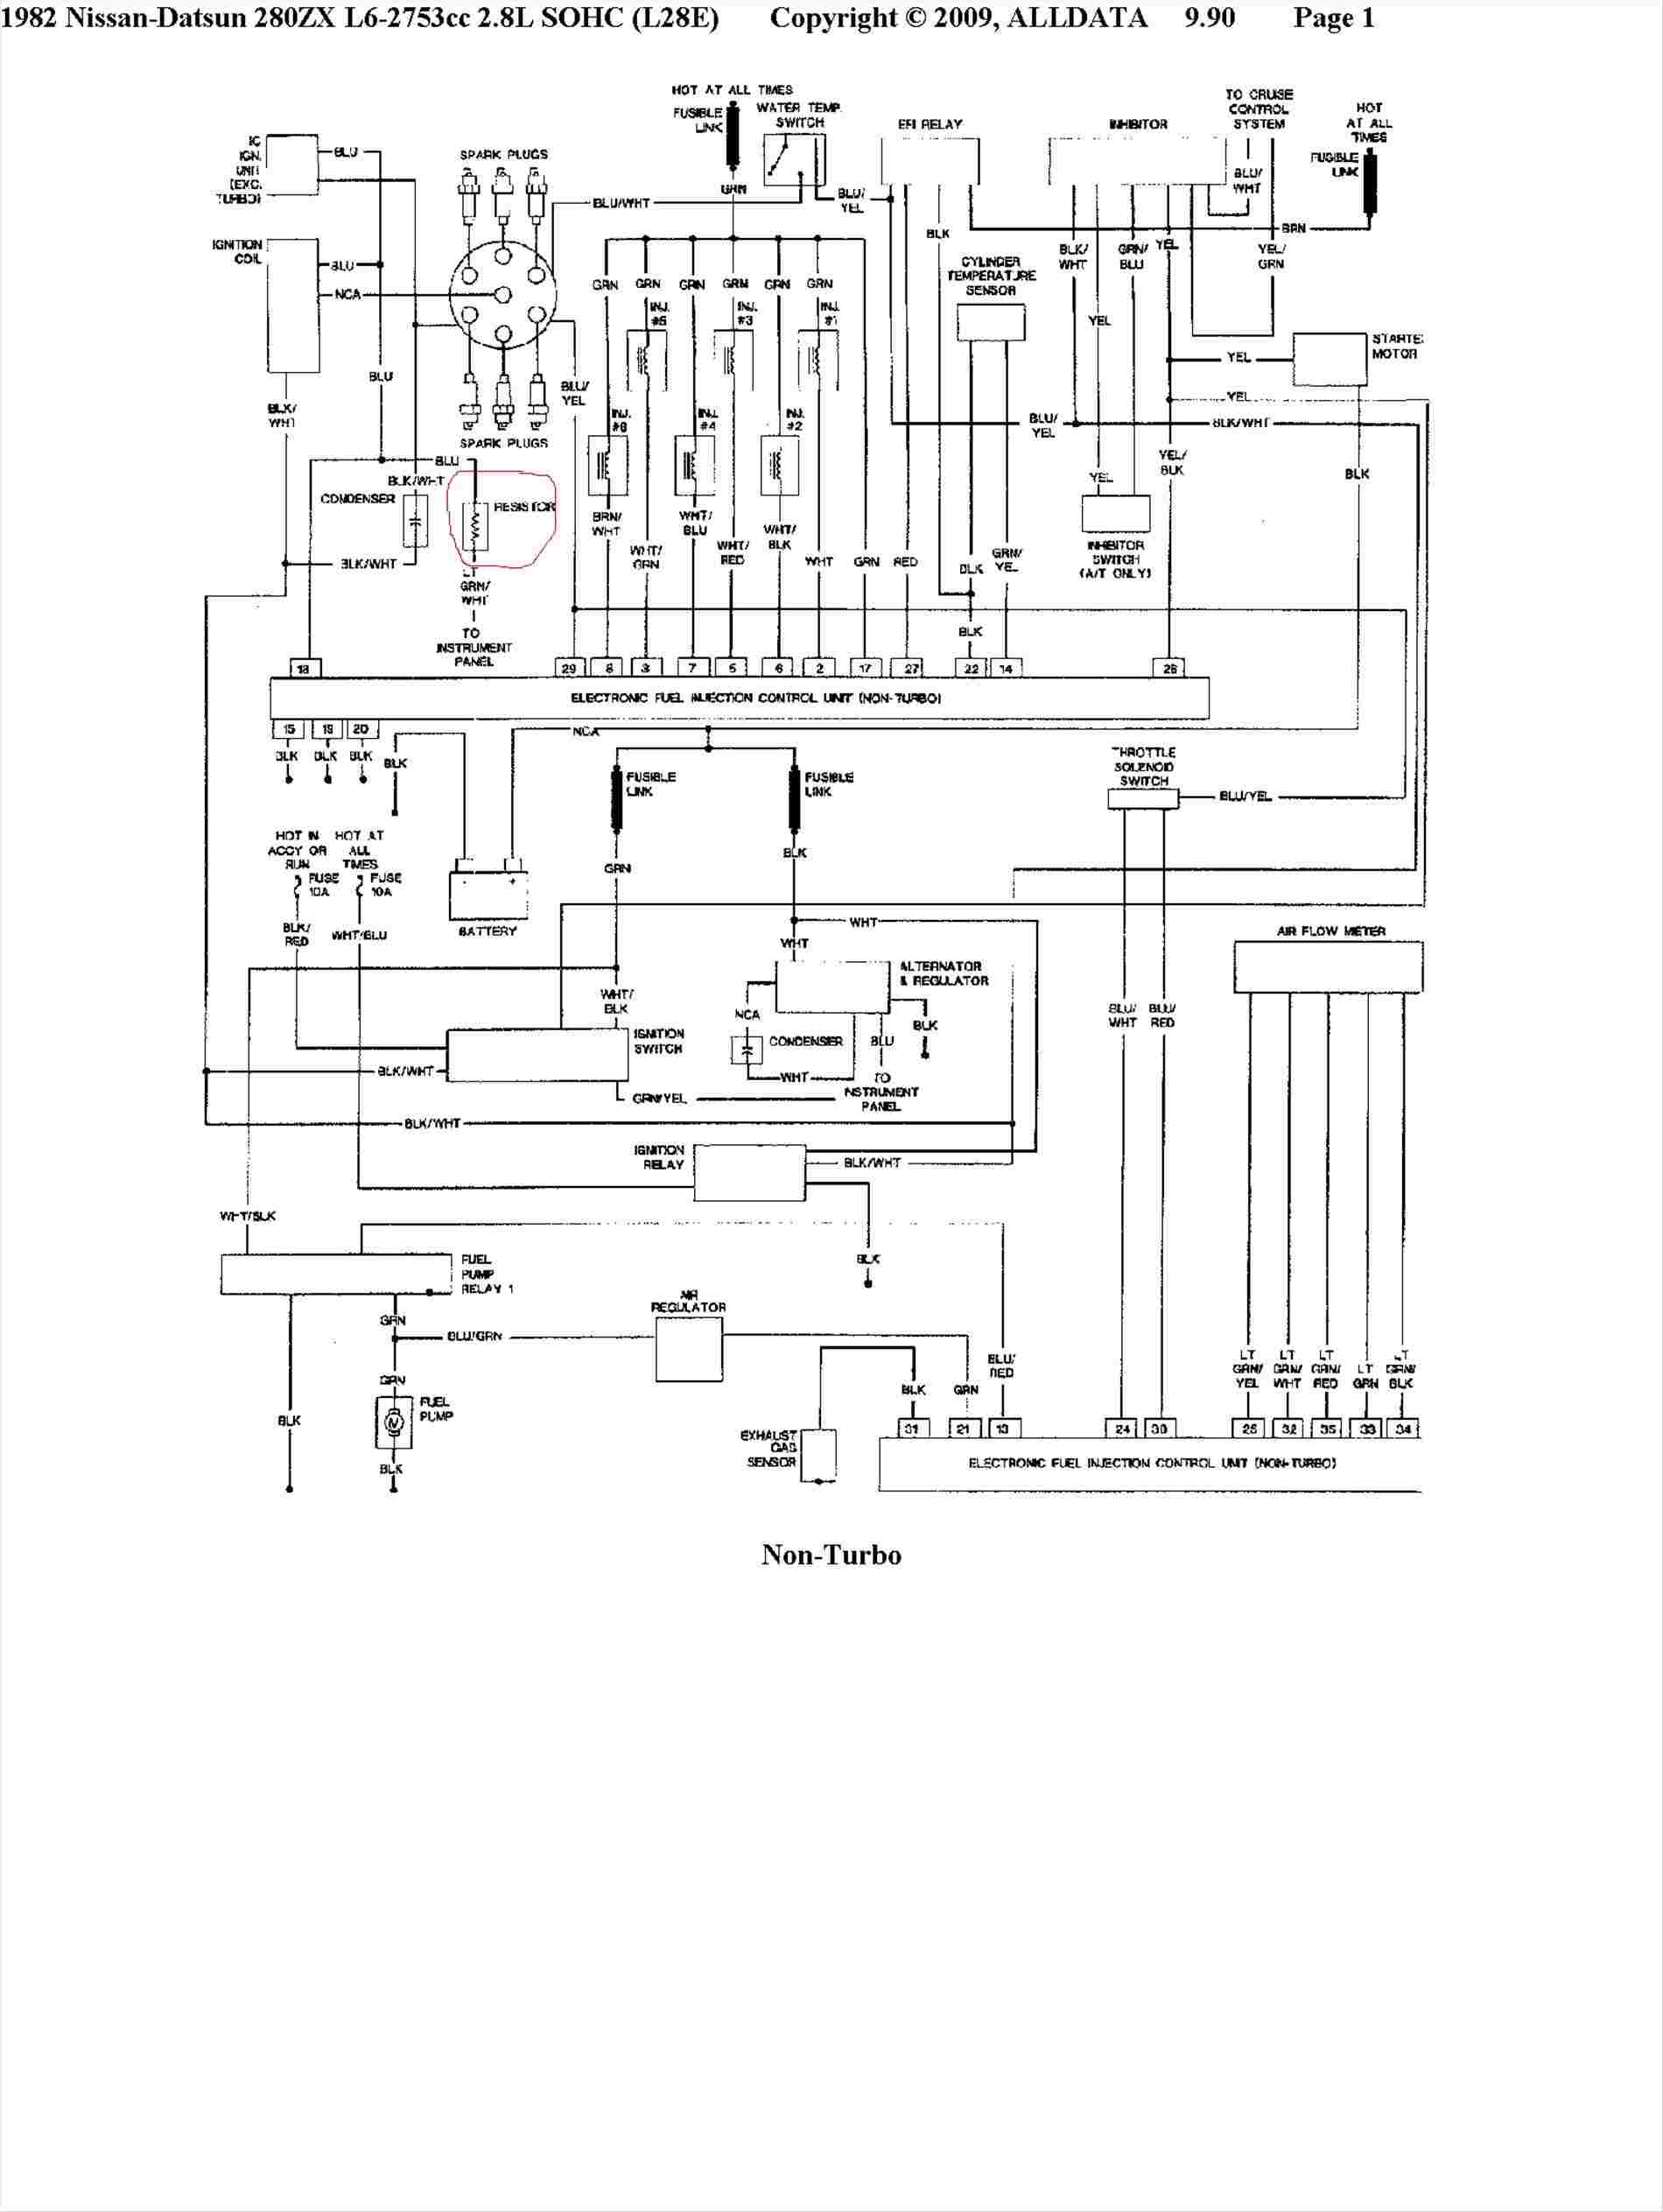 Lionel Train Wiring Diagram